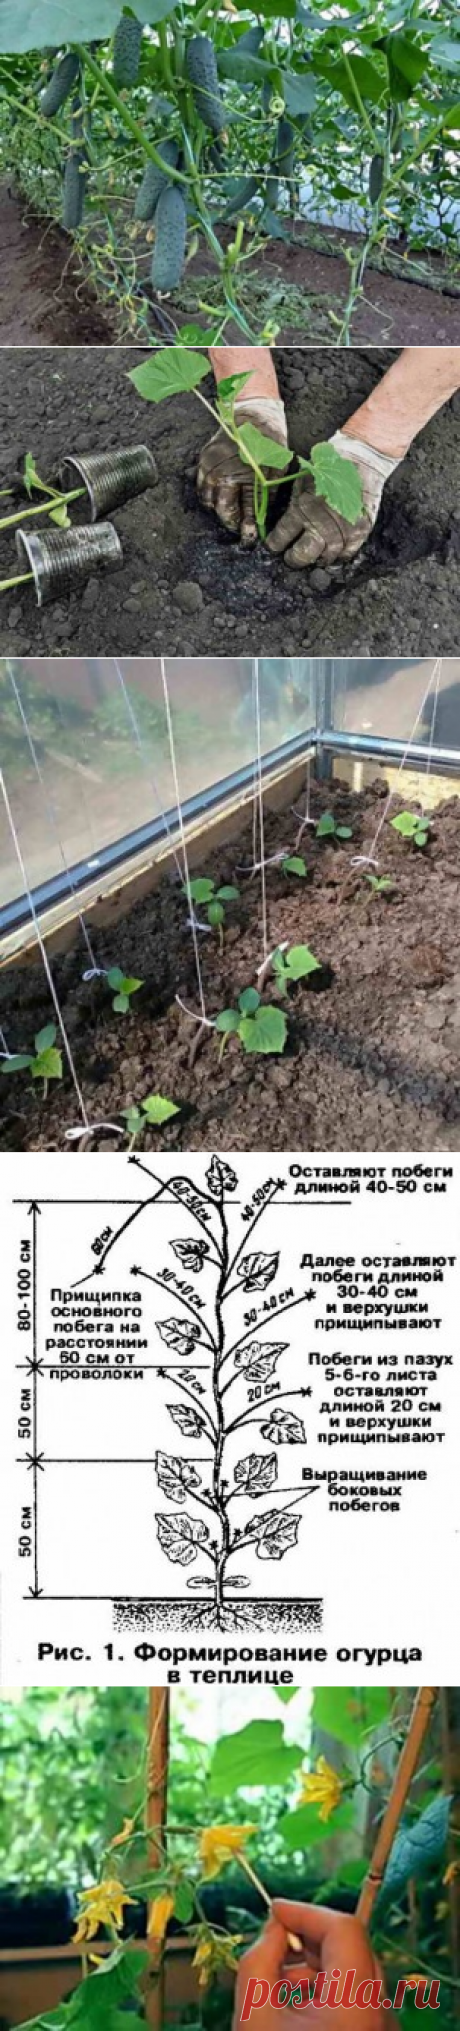 Cultivation of cucumbers in the greenhouse: from crops of seeds before harvesting | Giving - for the future